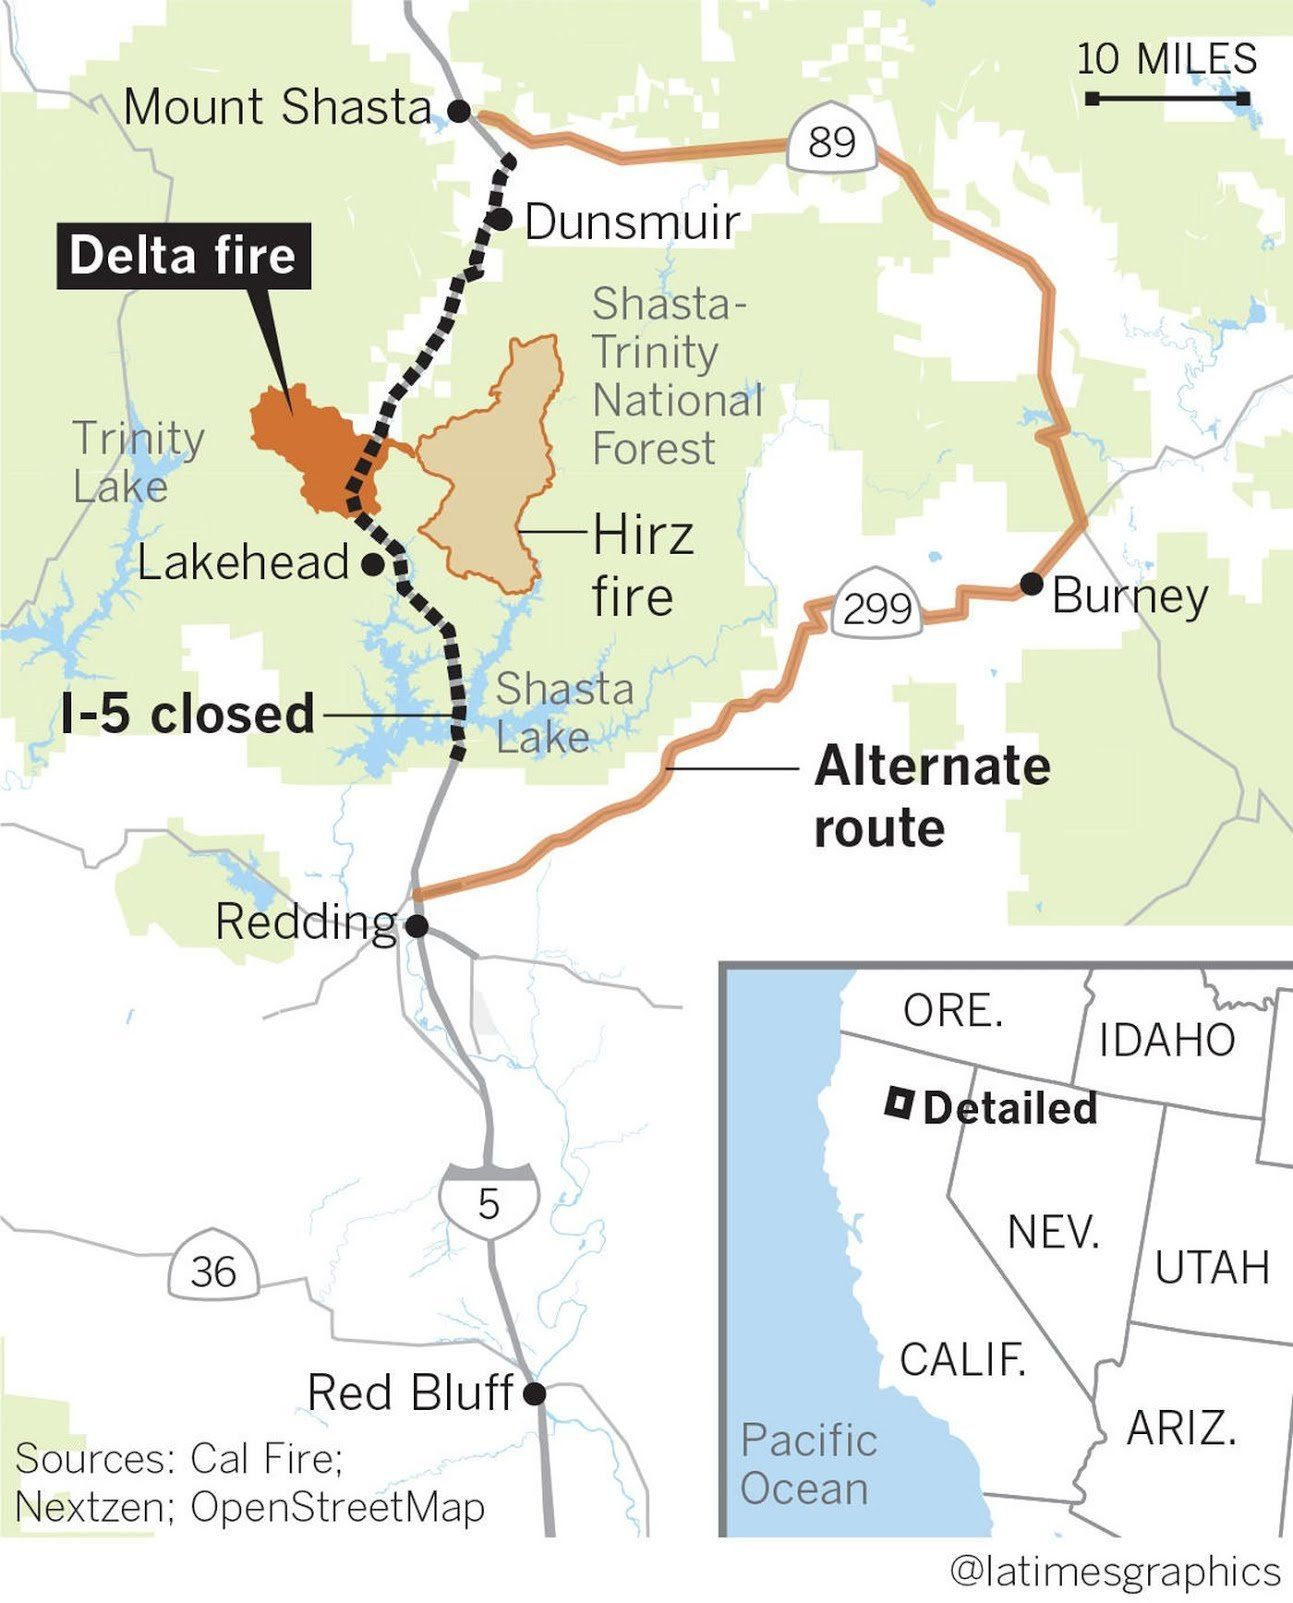 2000-jpeg.45395_1-5 Fully OPEN, all lanes, restrictions lifted.   (Delta wildfire, Shasta county, CA)_General Banter_Squat the Planet_8:58 PM